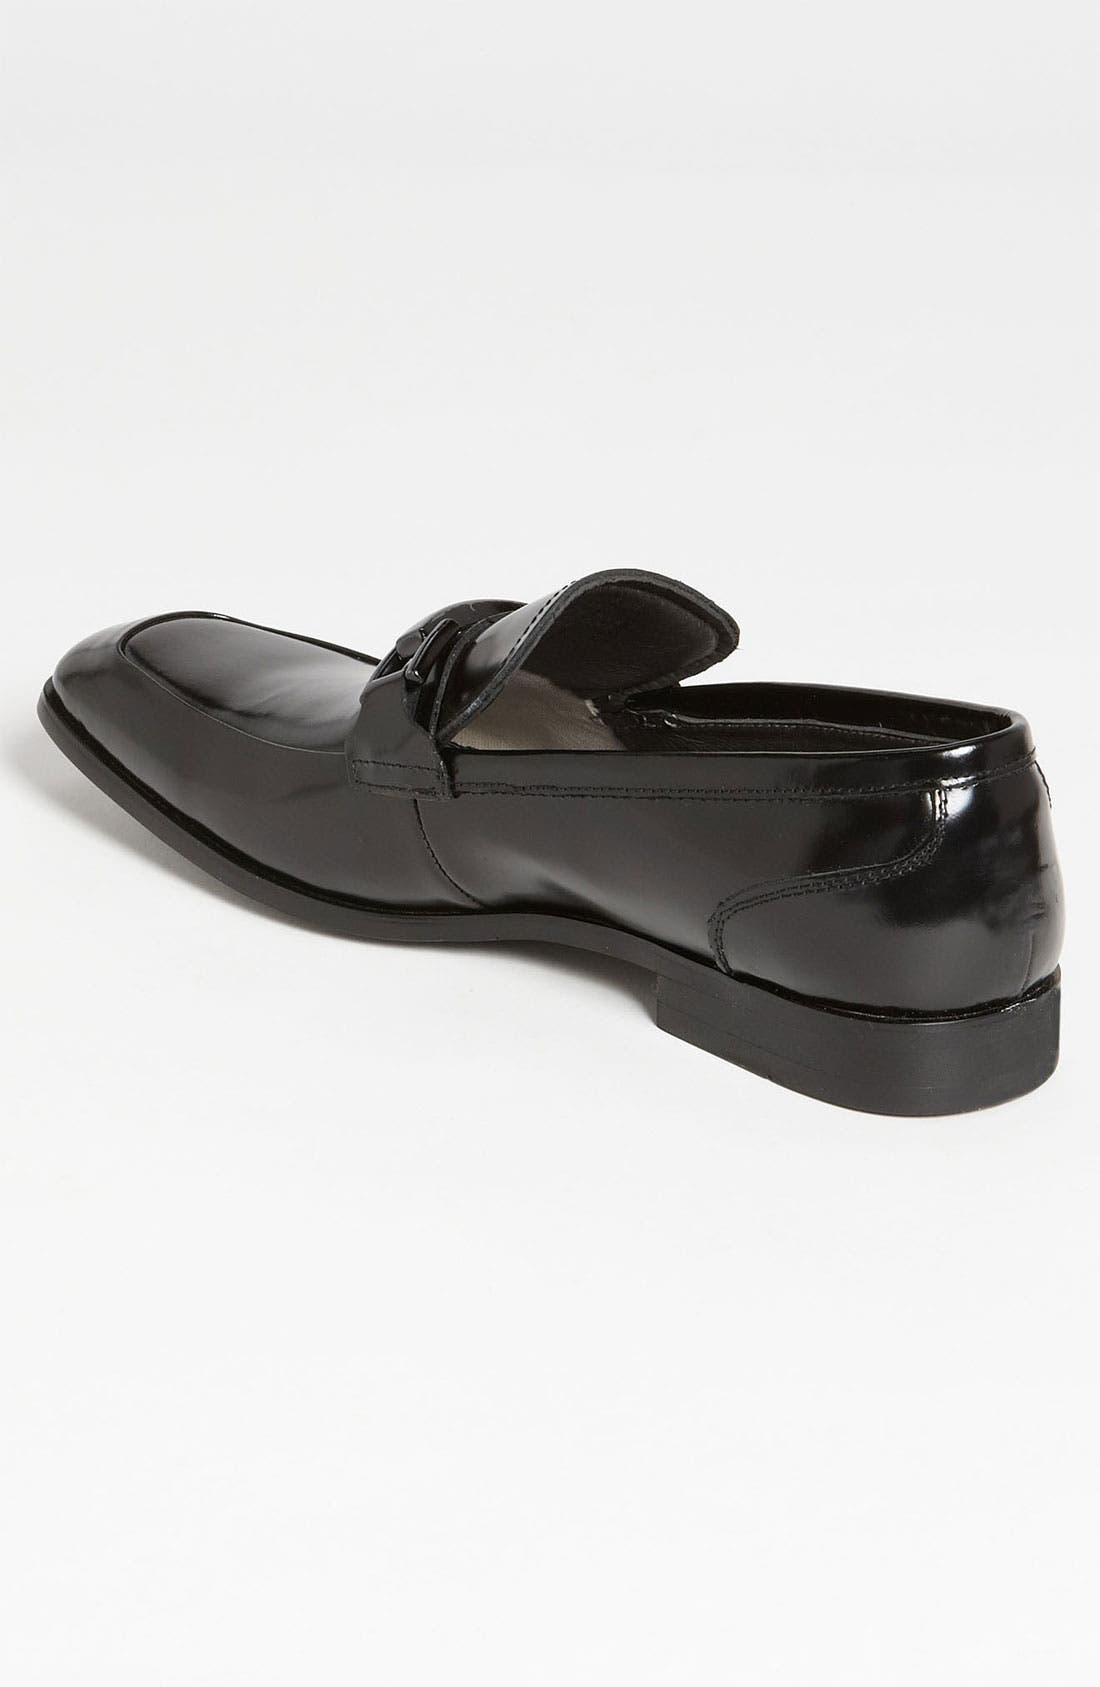 Alternate Image 2  - Steve Madden 'Juggler' Bit Loafer (Online Only)